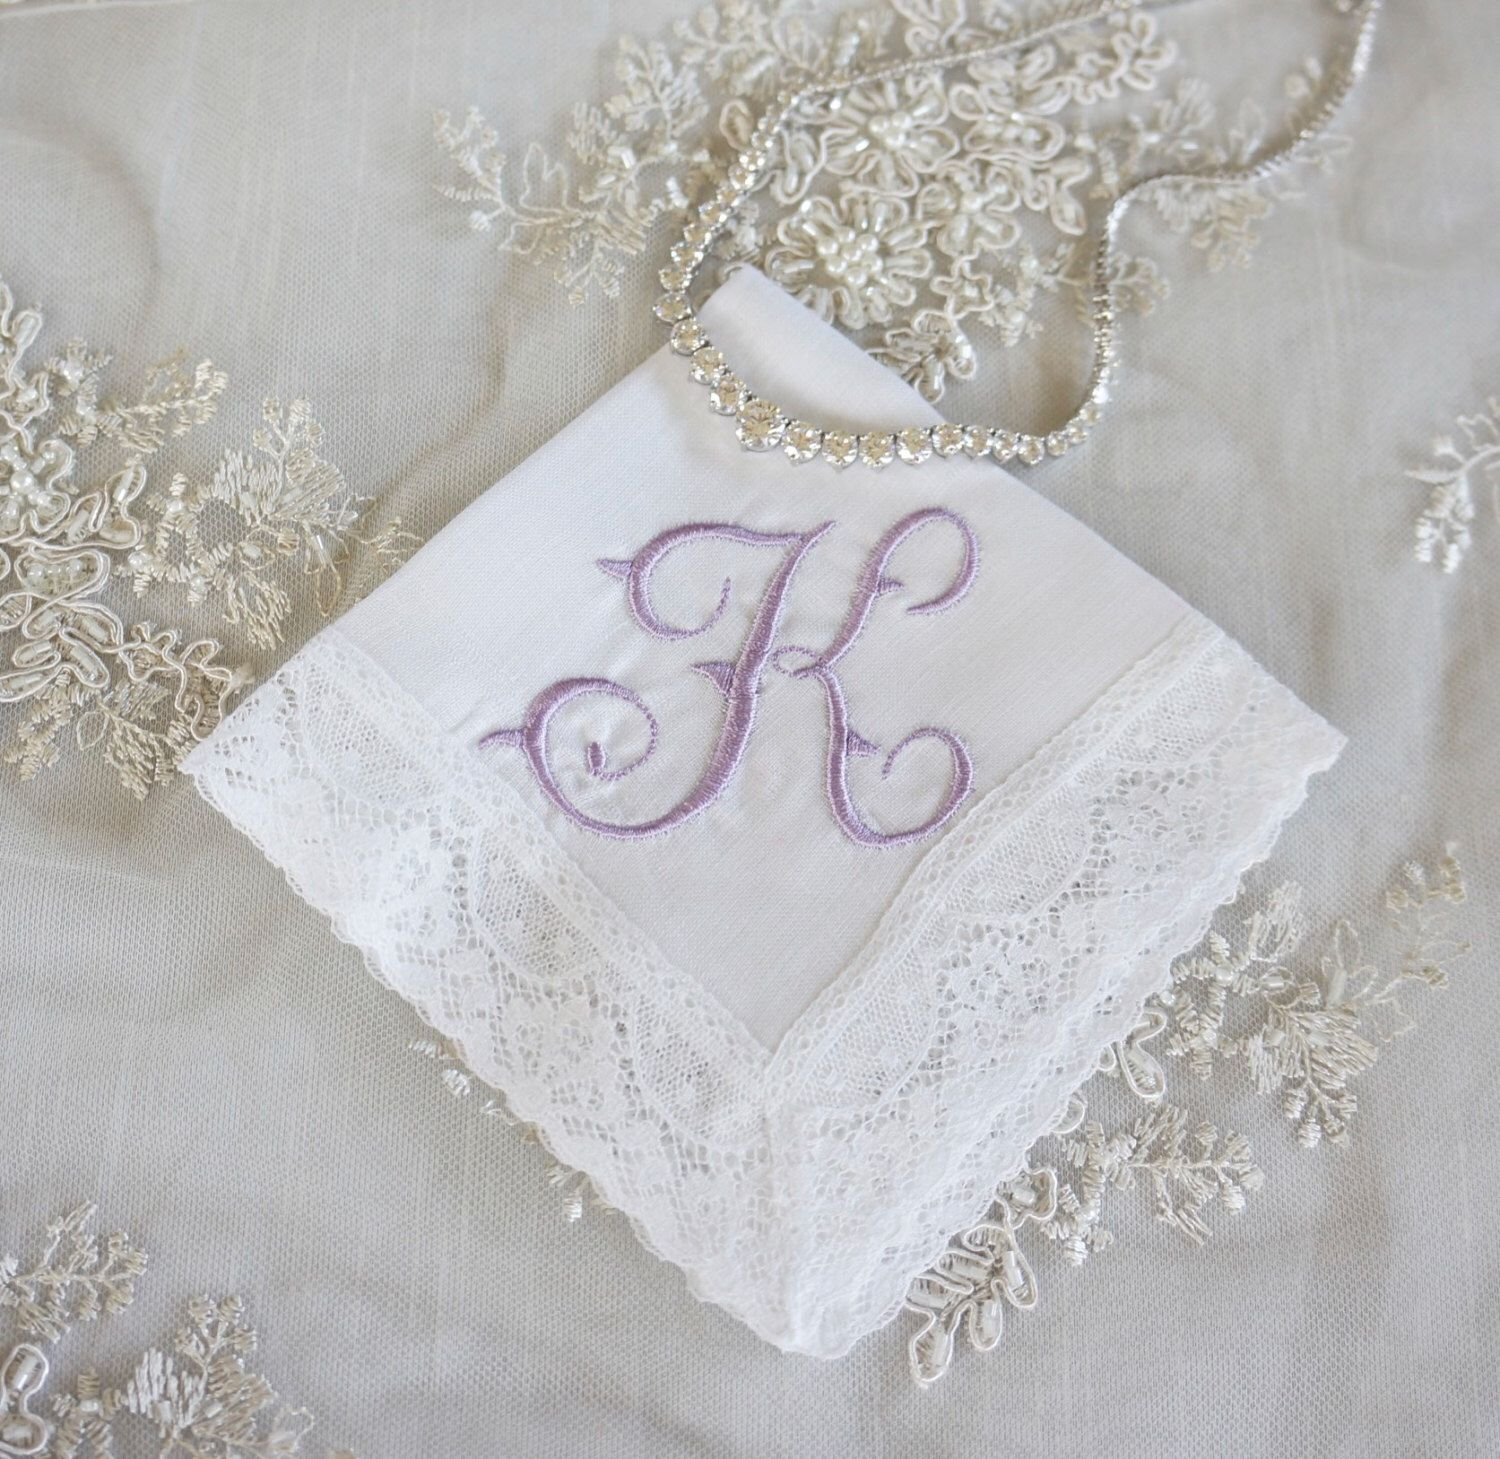 Wedding Monogrammed Handkerchief Personalized Bridal Handkerchiefs Gift